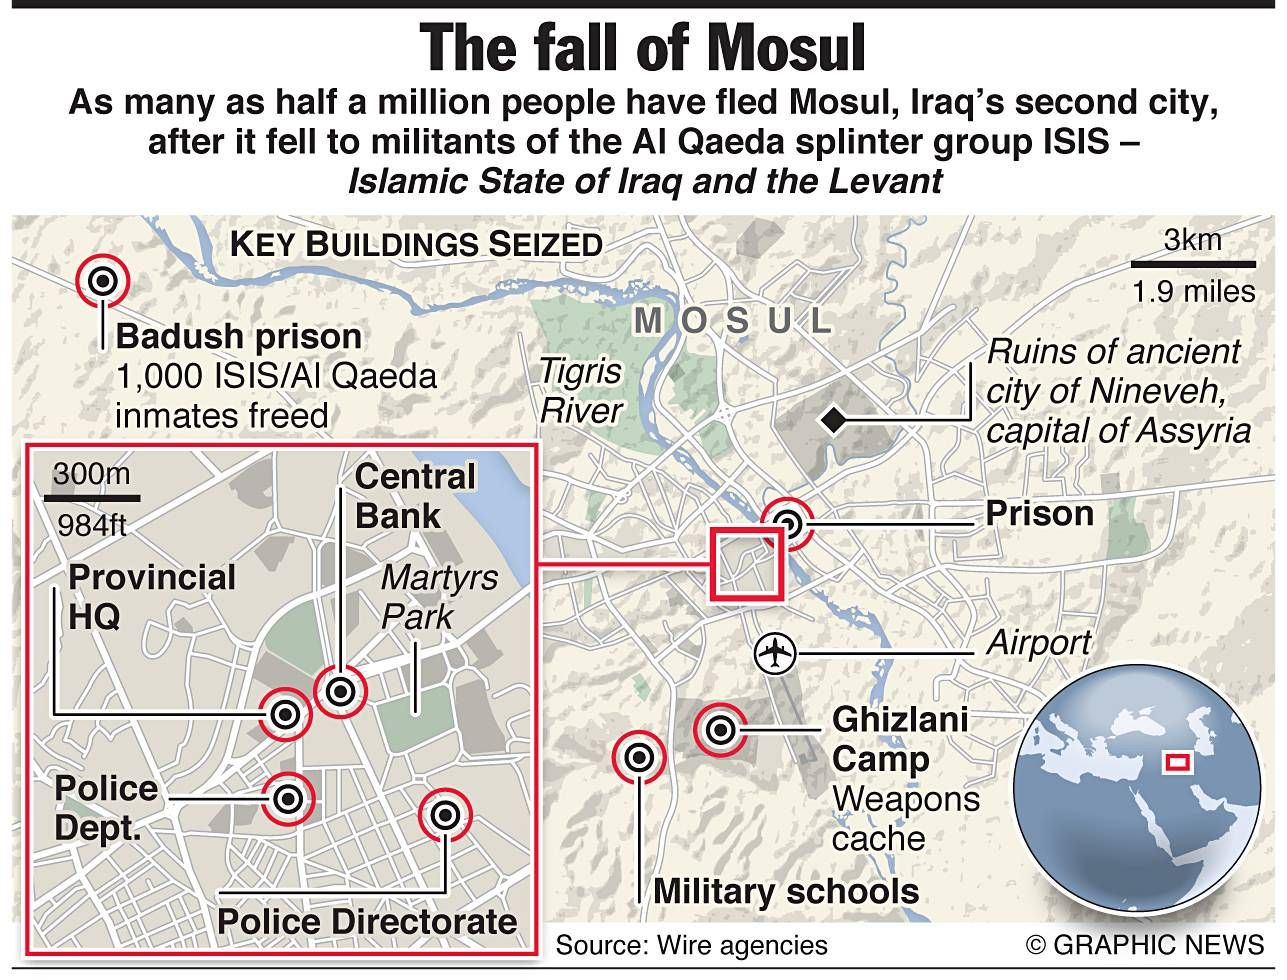 map of mosul showing location of ruins of nineveh  interesting  - map of mosul showing location of ruins of nineveh